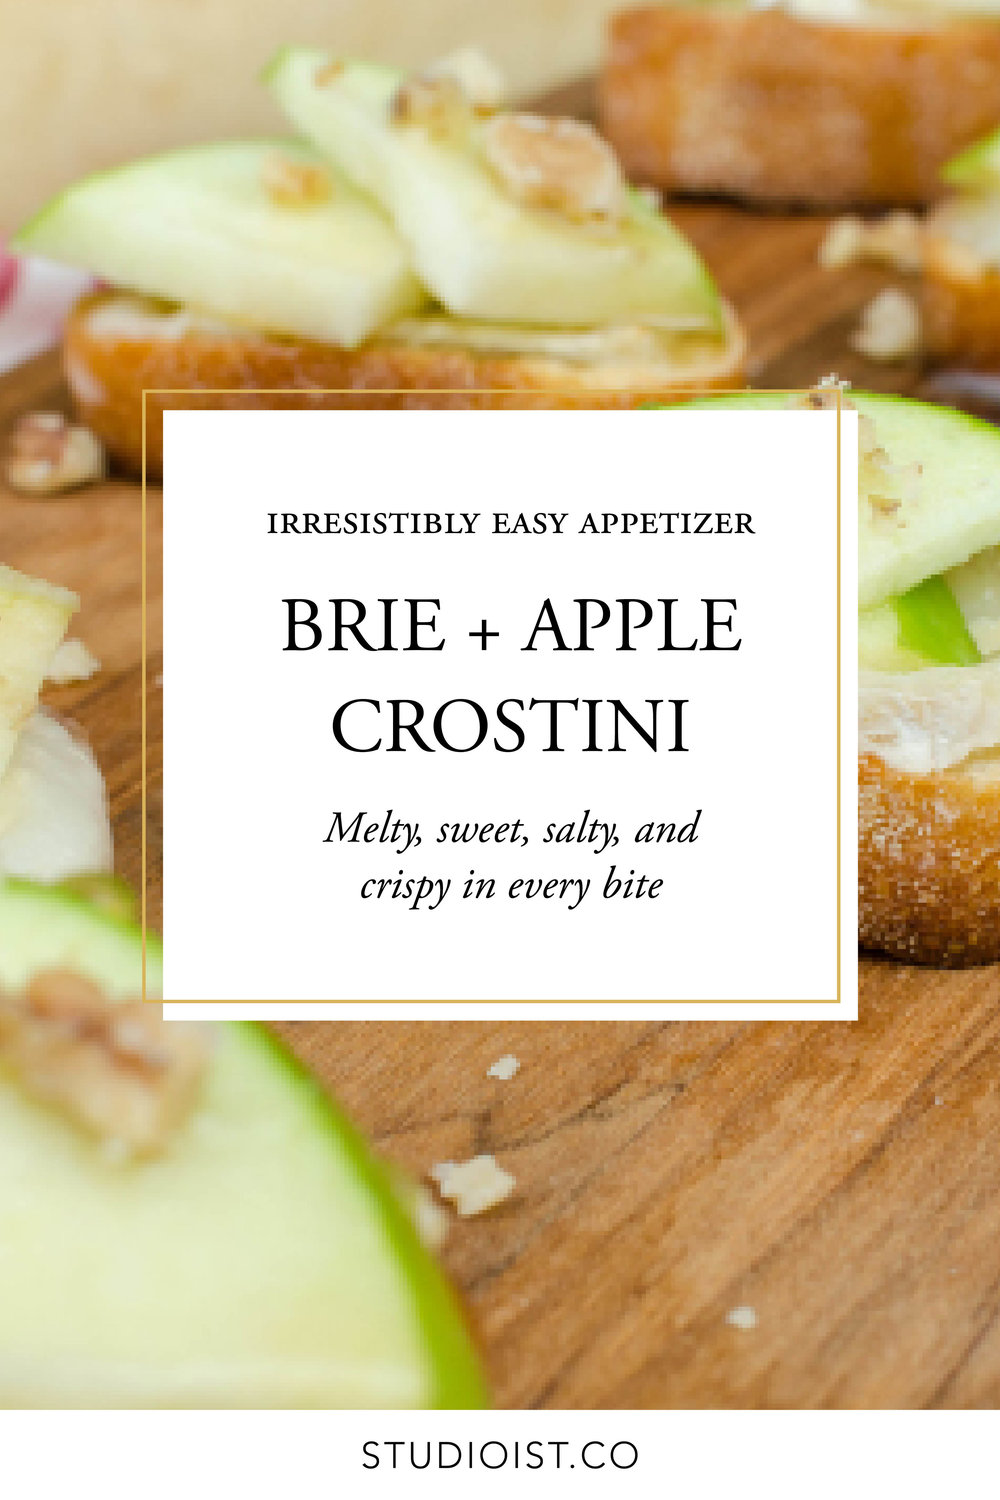 Studioist_Pinterest Design_Brie-Apple Crostini.jpg